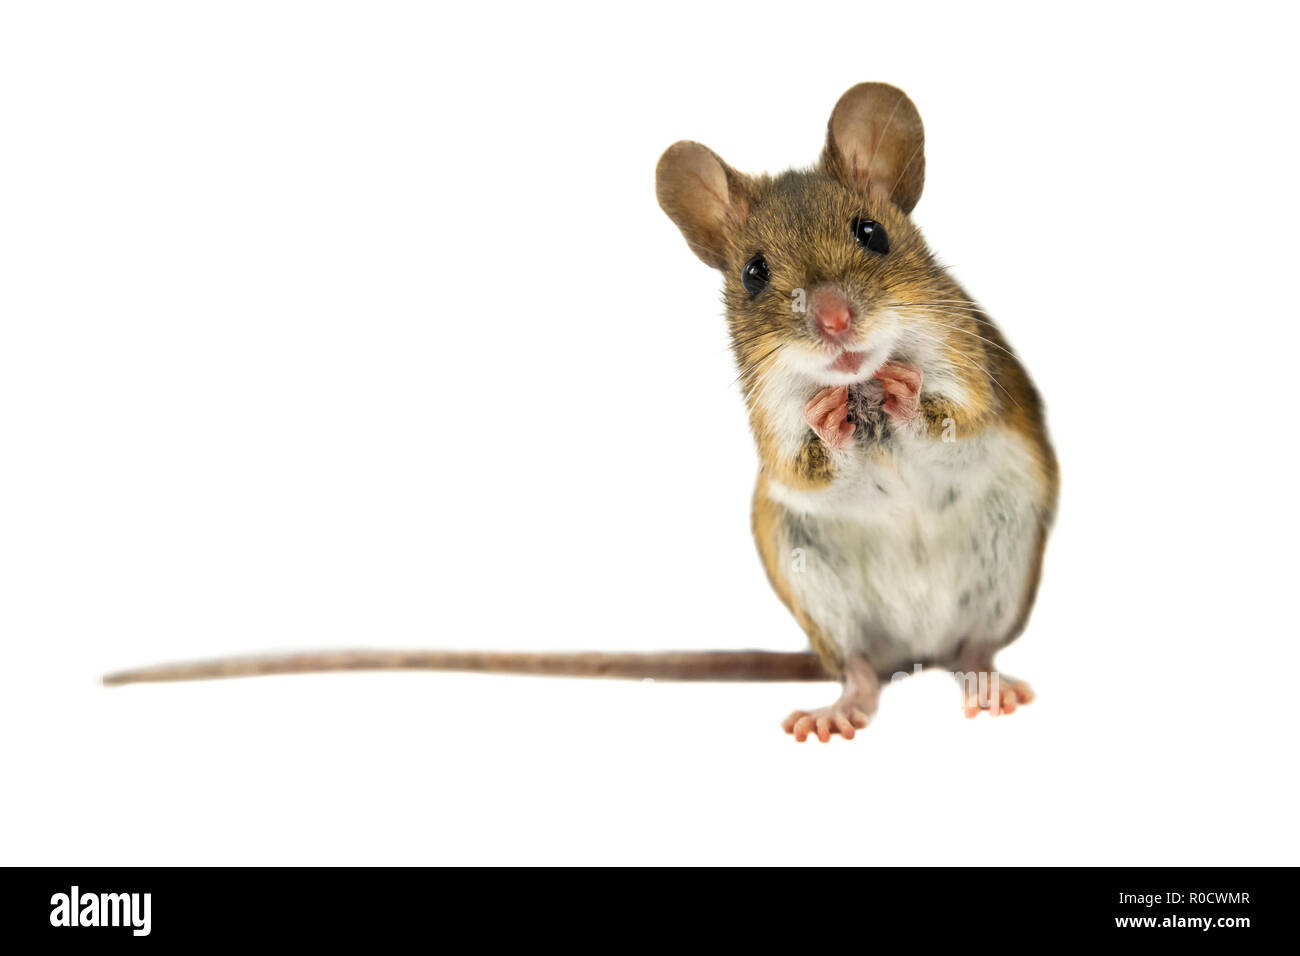 Geeky Wood mouse (Apodemus sylvaticus) with curious cute brown eyes looking in the camera on white background - Stock Image